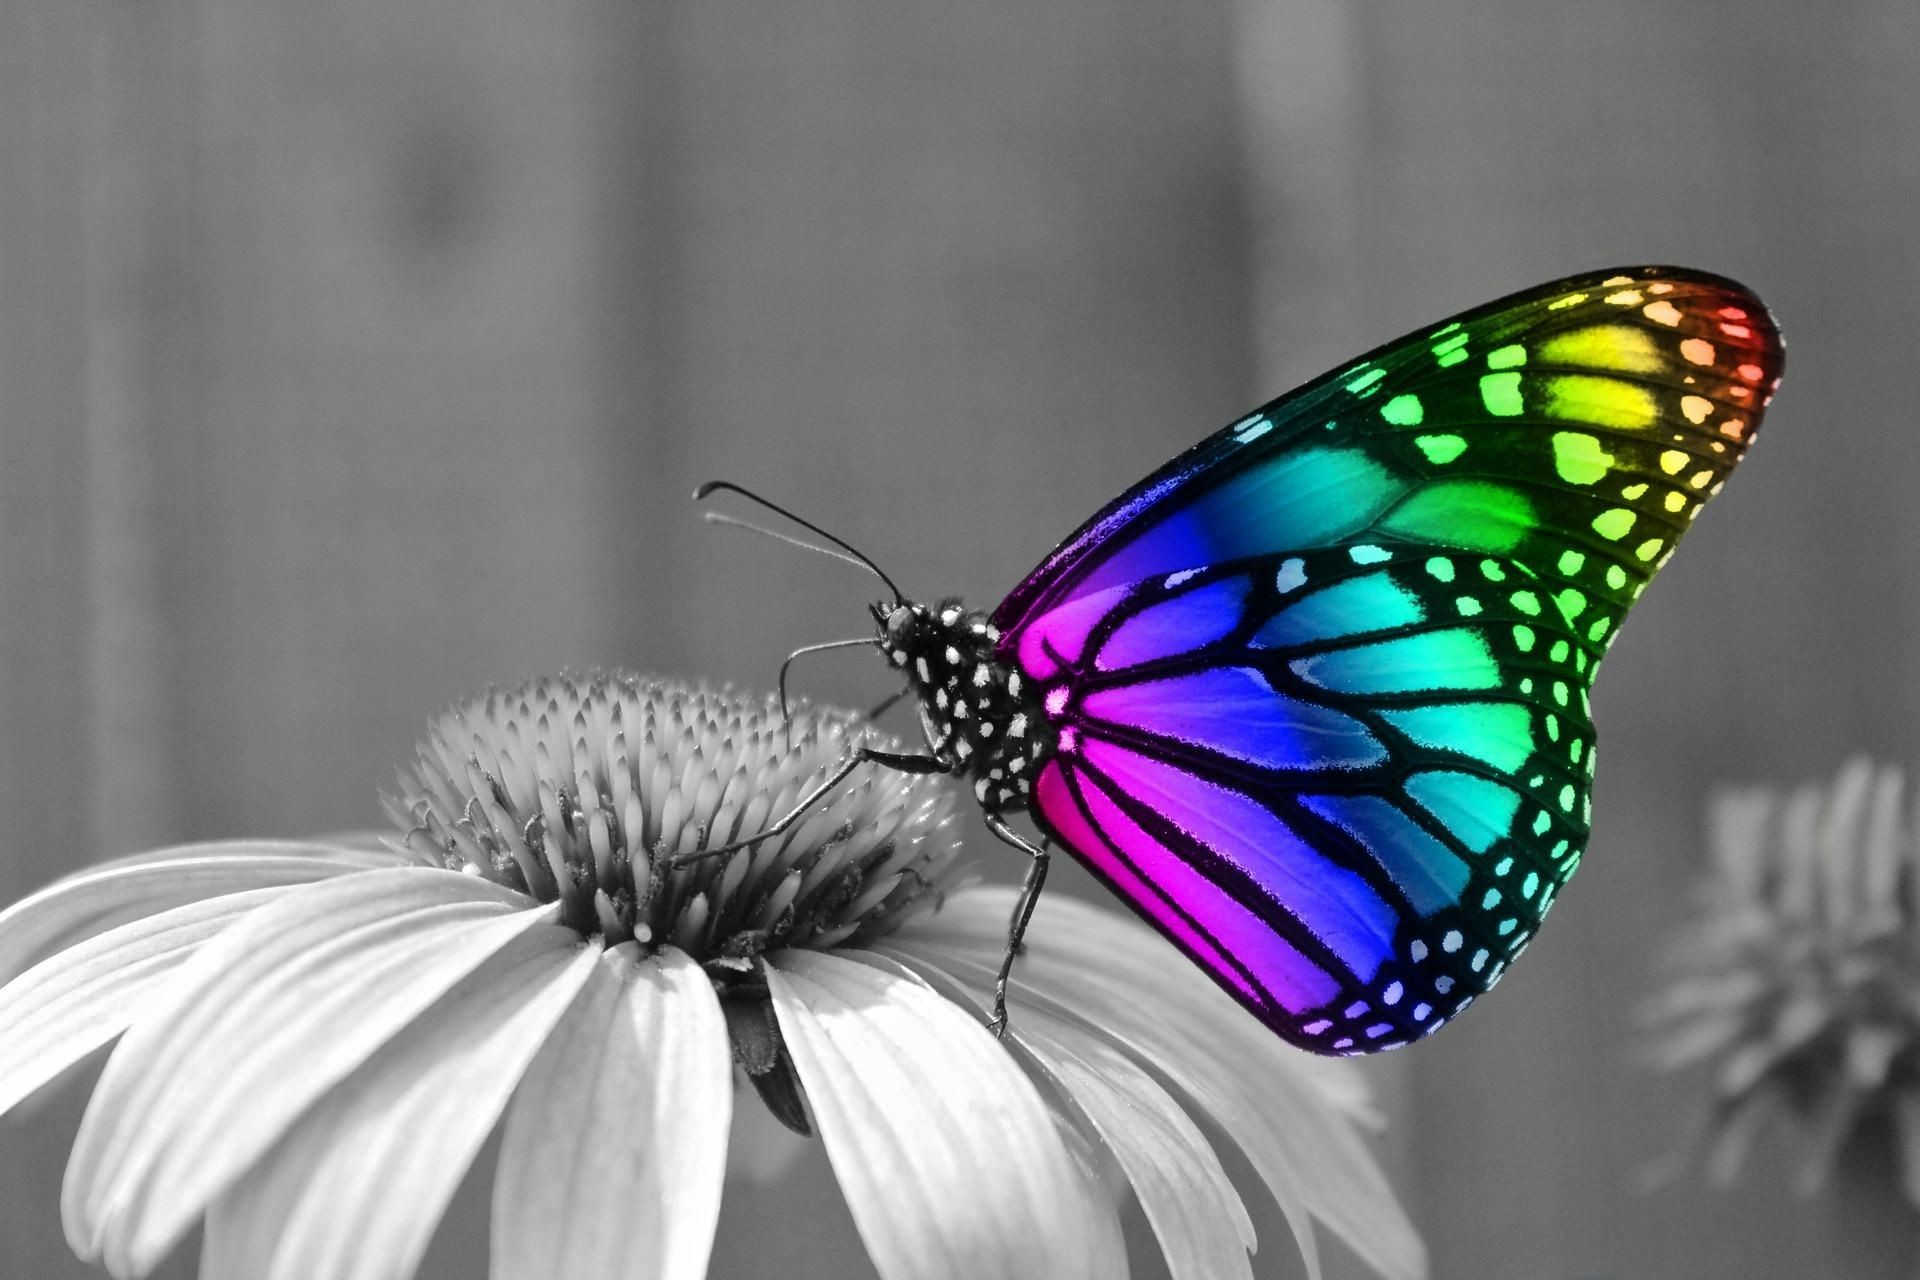 Butterfly Wallpaper Hd Ch004a - Butterfly Insects , HD Wallpaper & Backgrounds